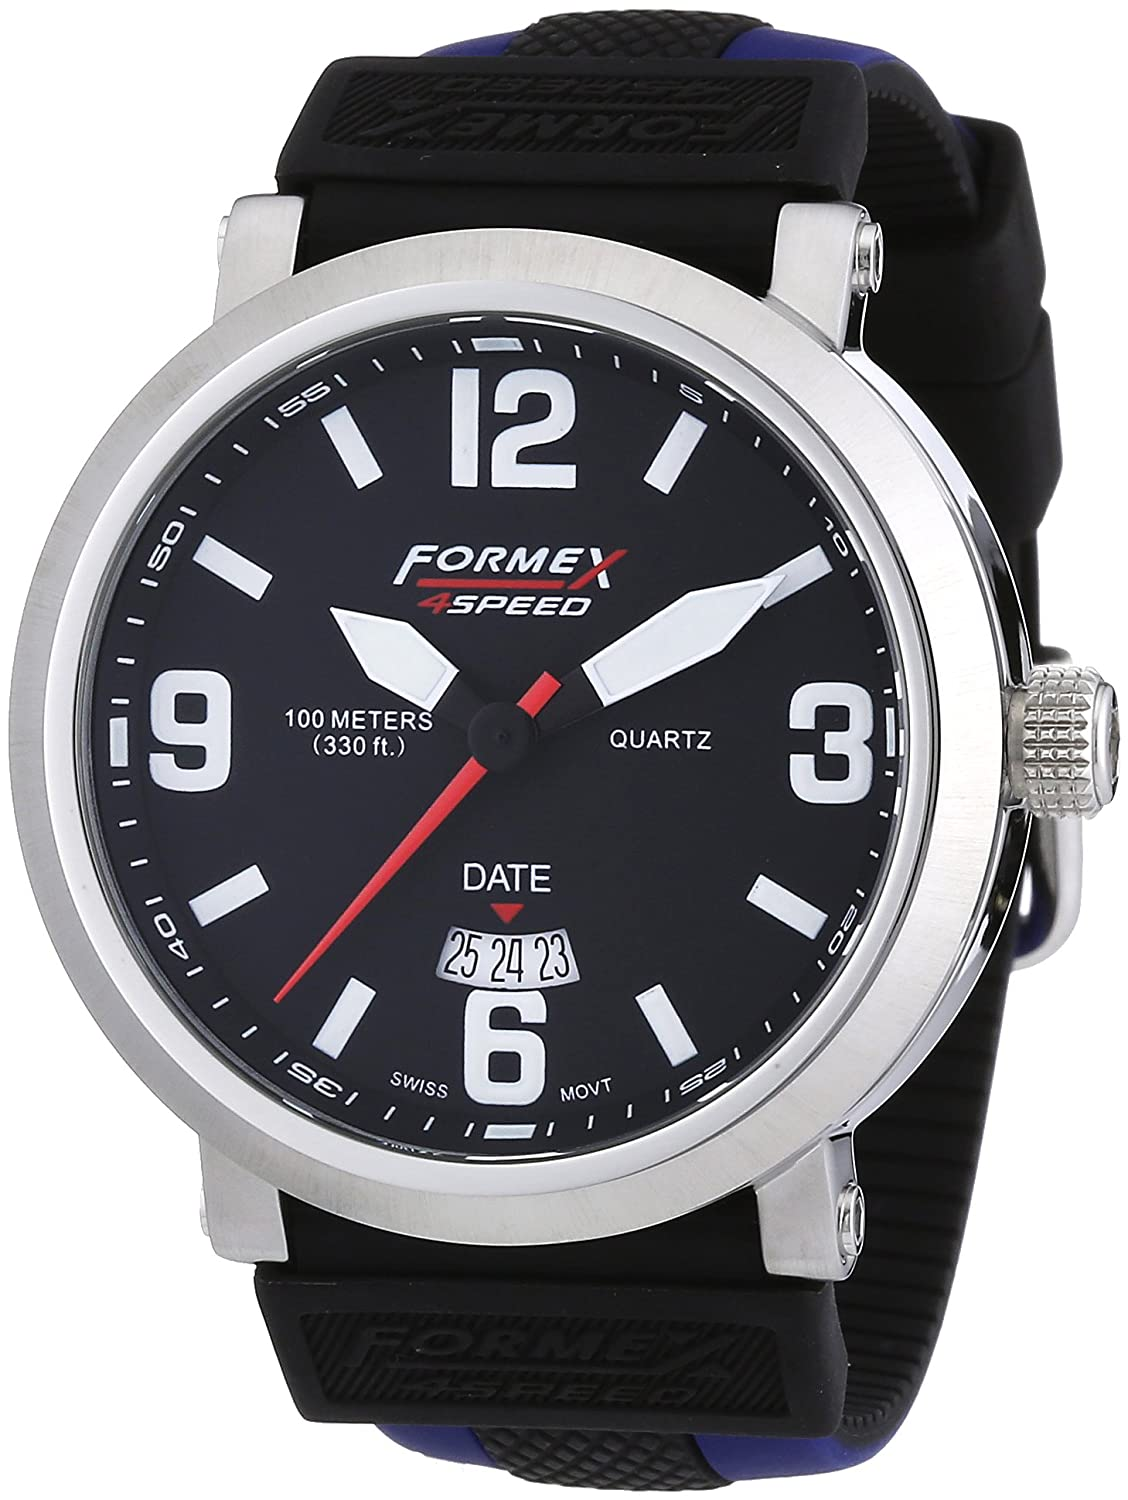 Formex 4 Speed TS725 - Reloj analó